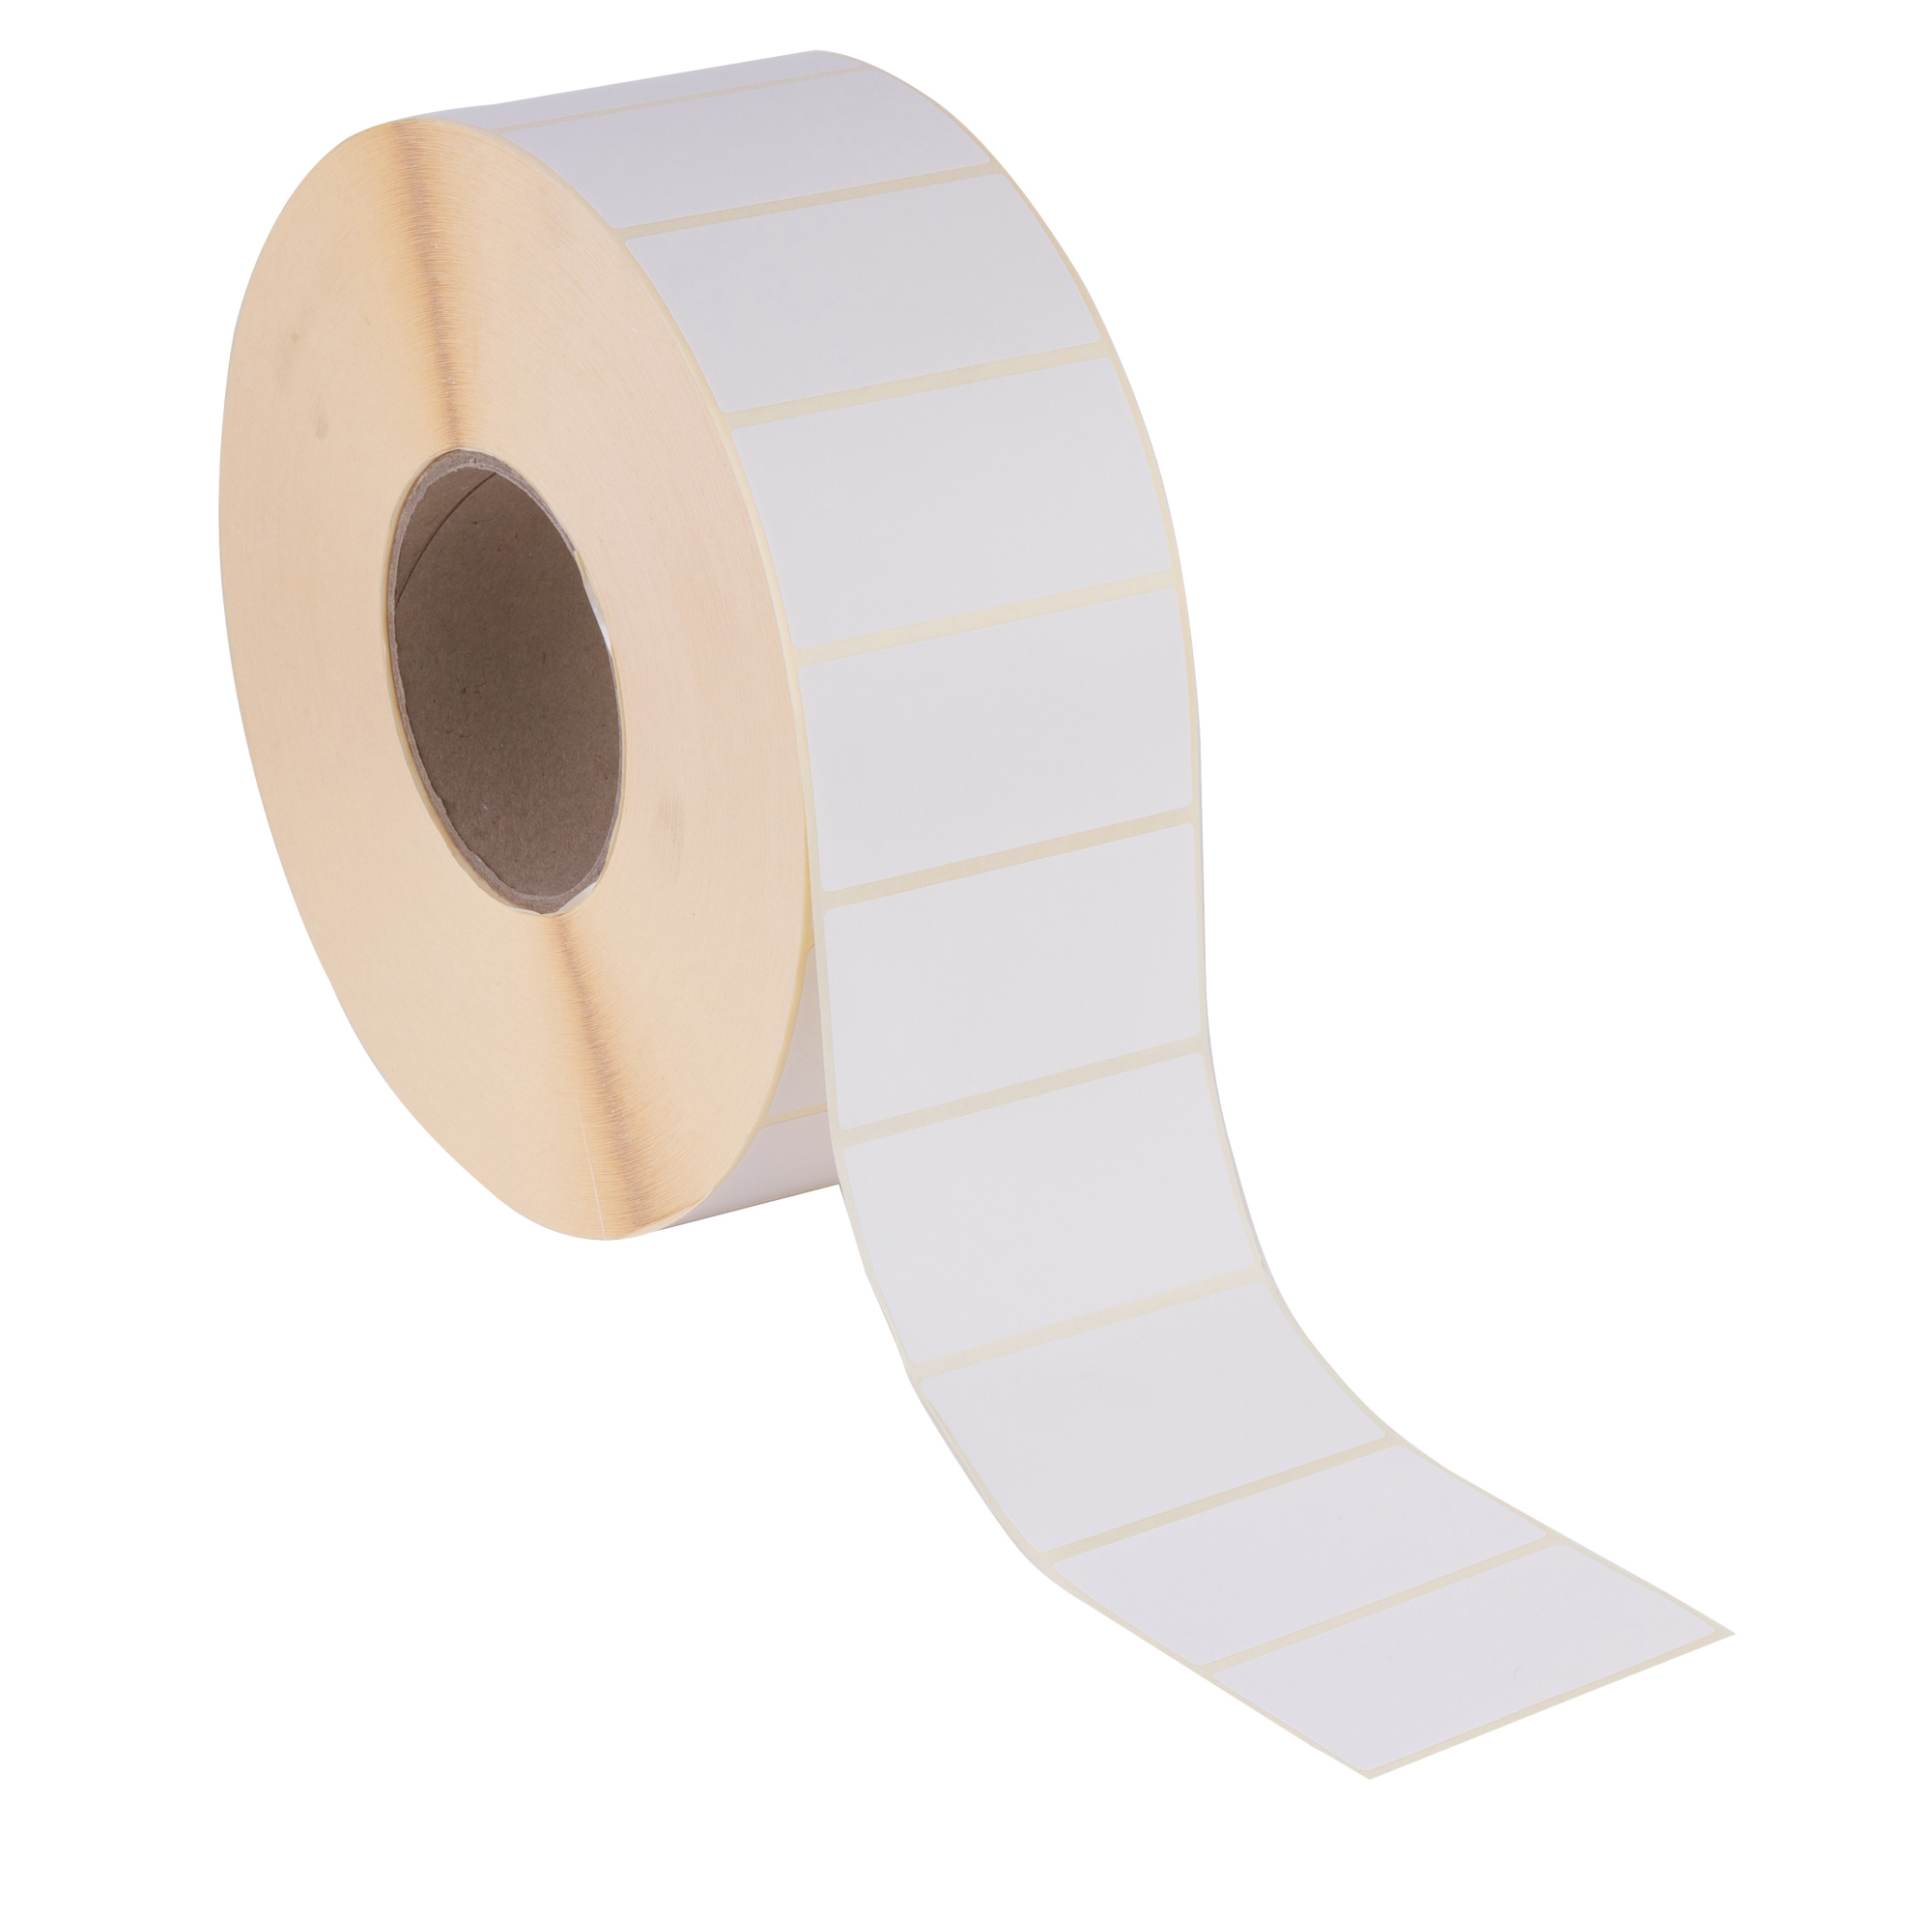 50 x 25mm Plain White Thermal Direct Printer Labels